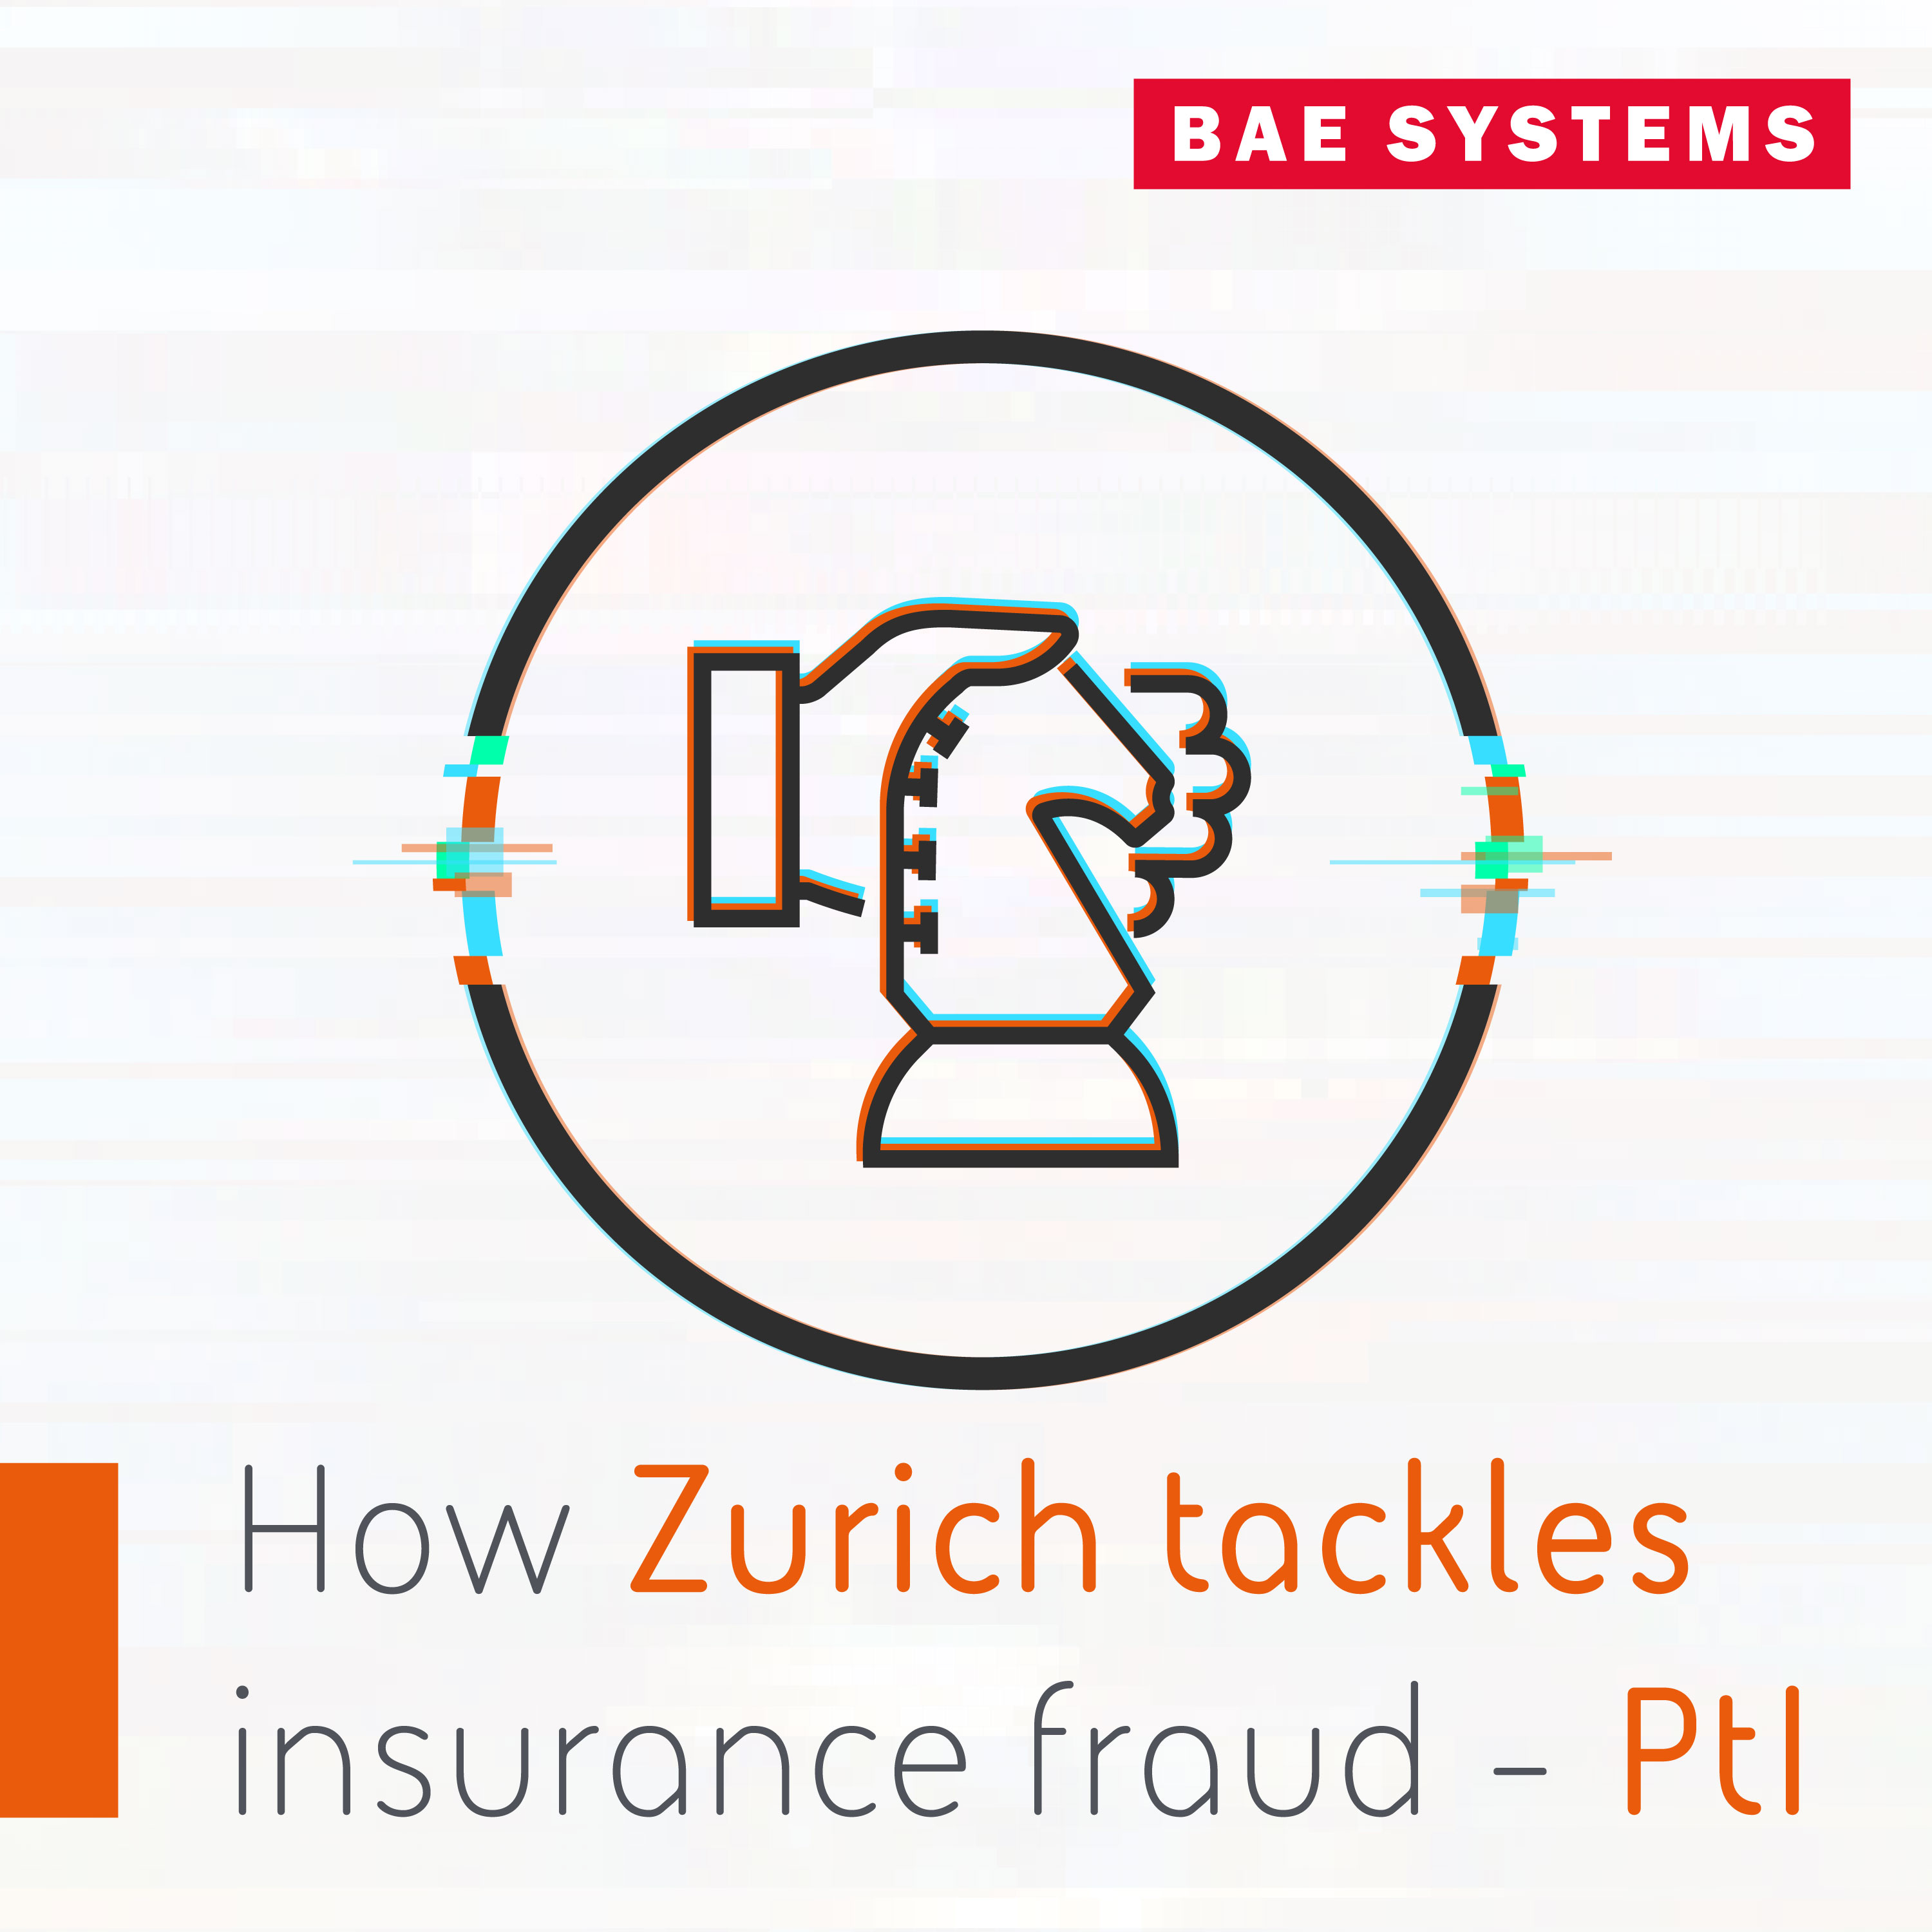 The Intelligence Download - Zurich's views on insurance fraud Pt1